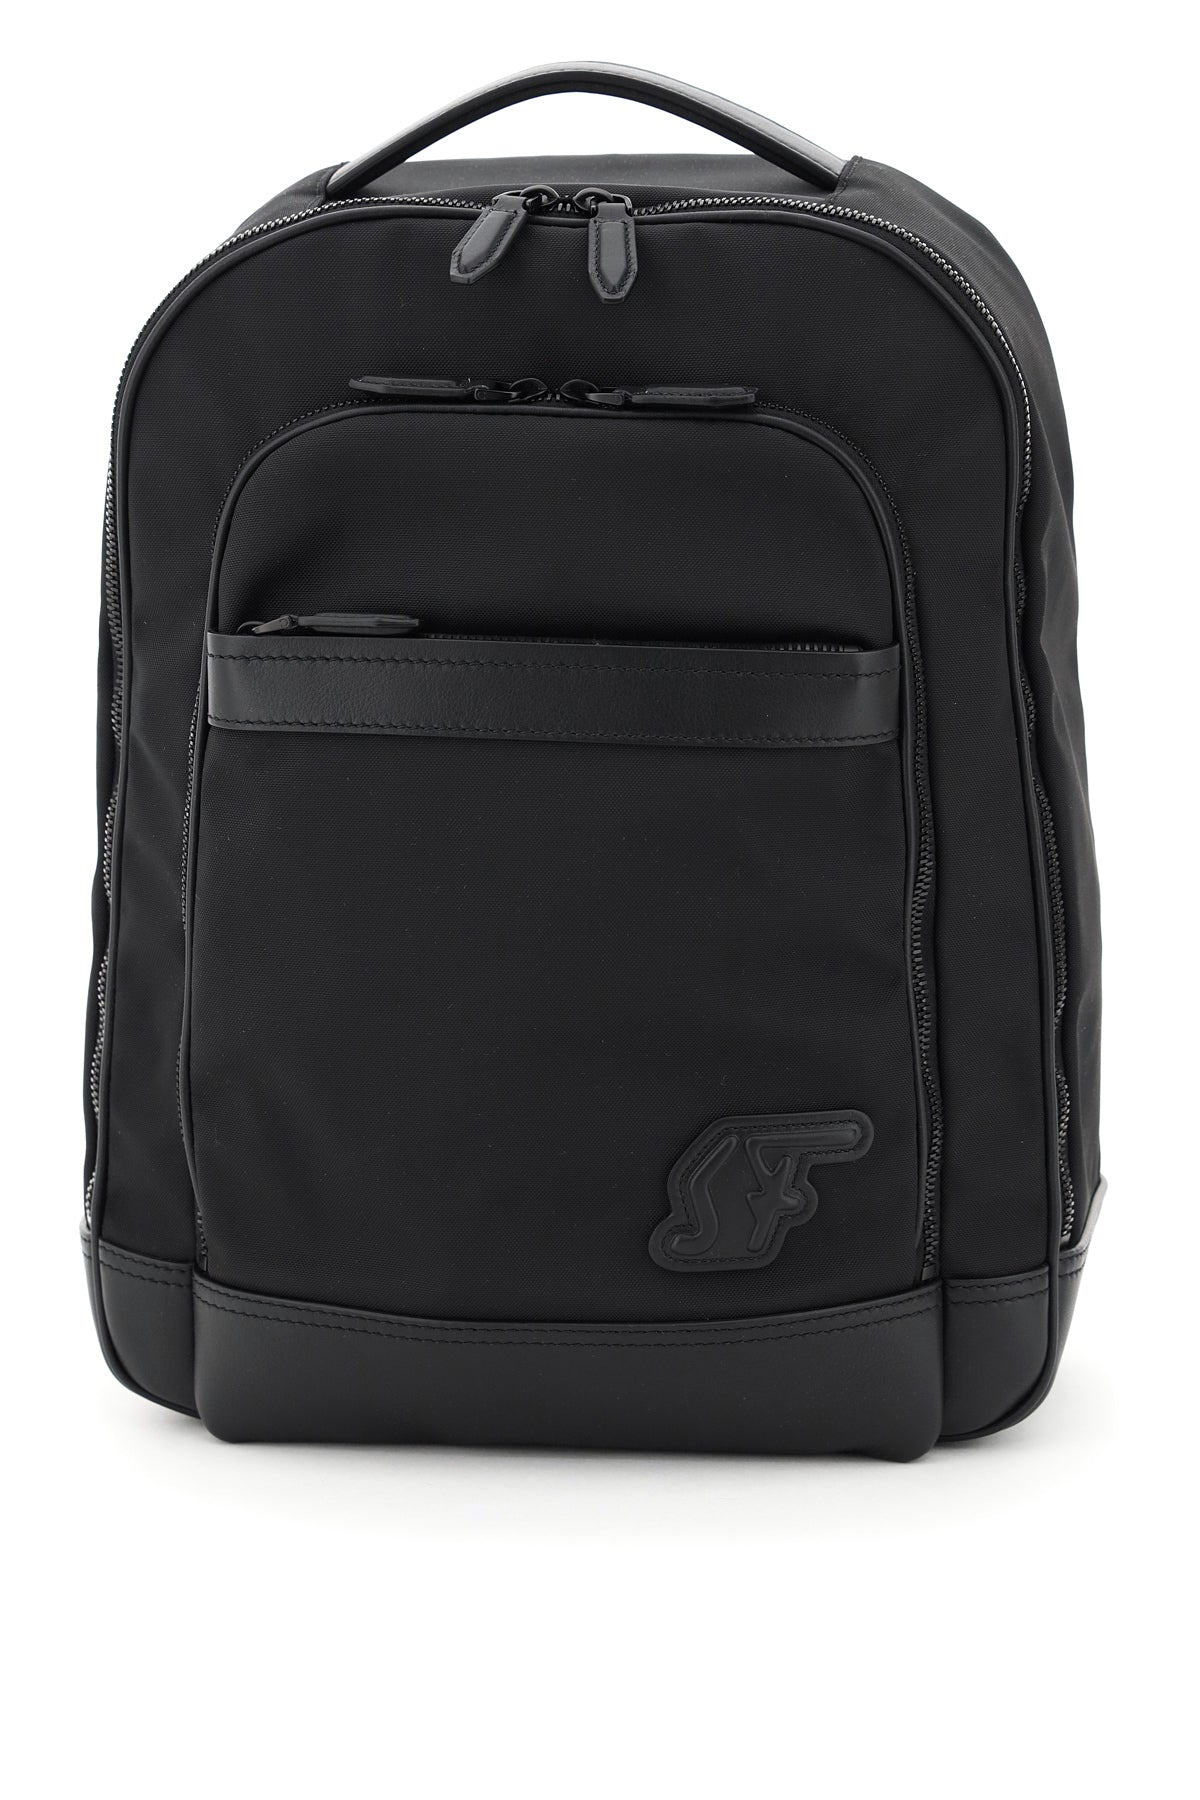 Salvatore Ferragamo SALVATORE FERRAGAMO SF LOGO PATCH BACKPACK